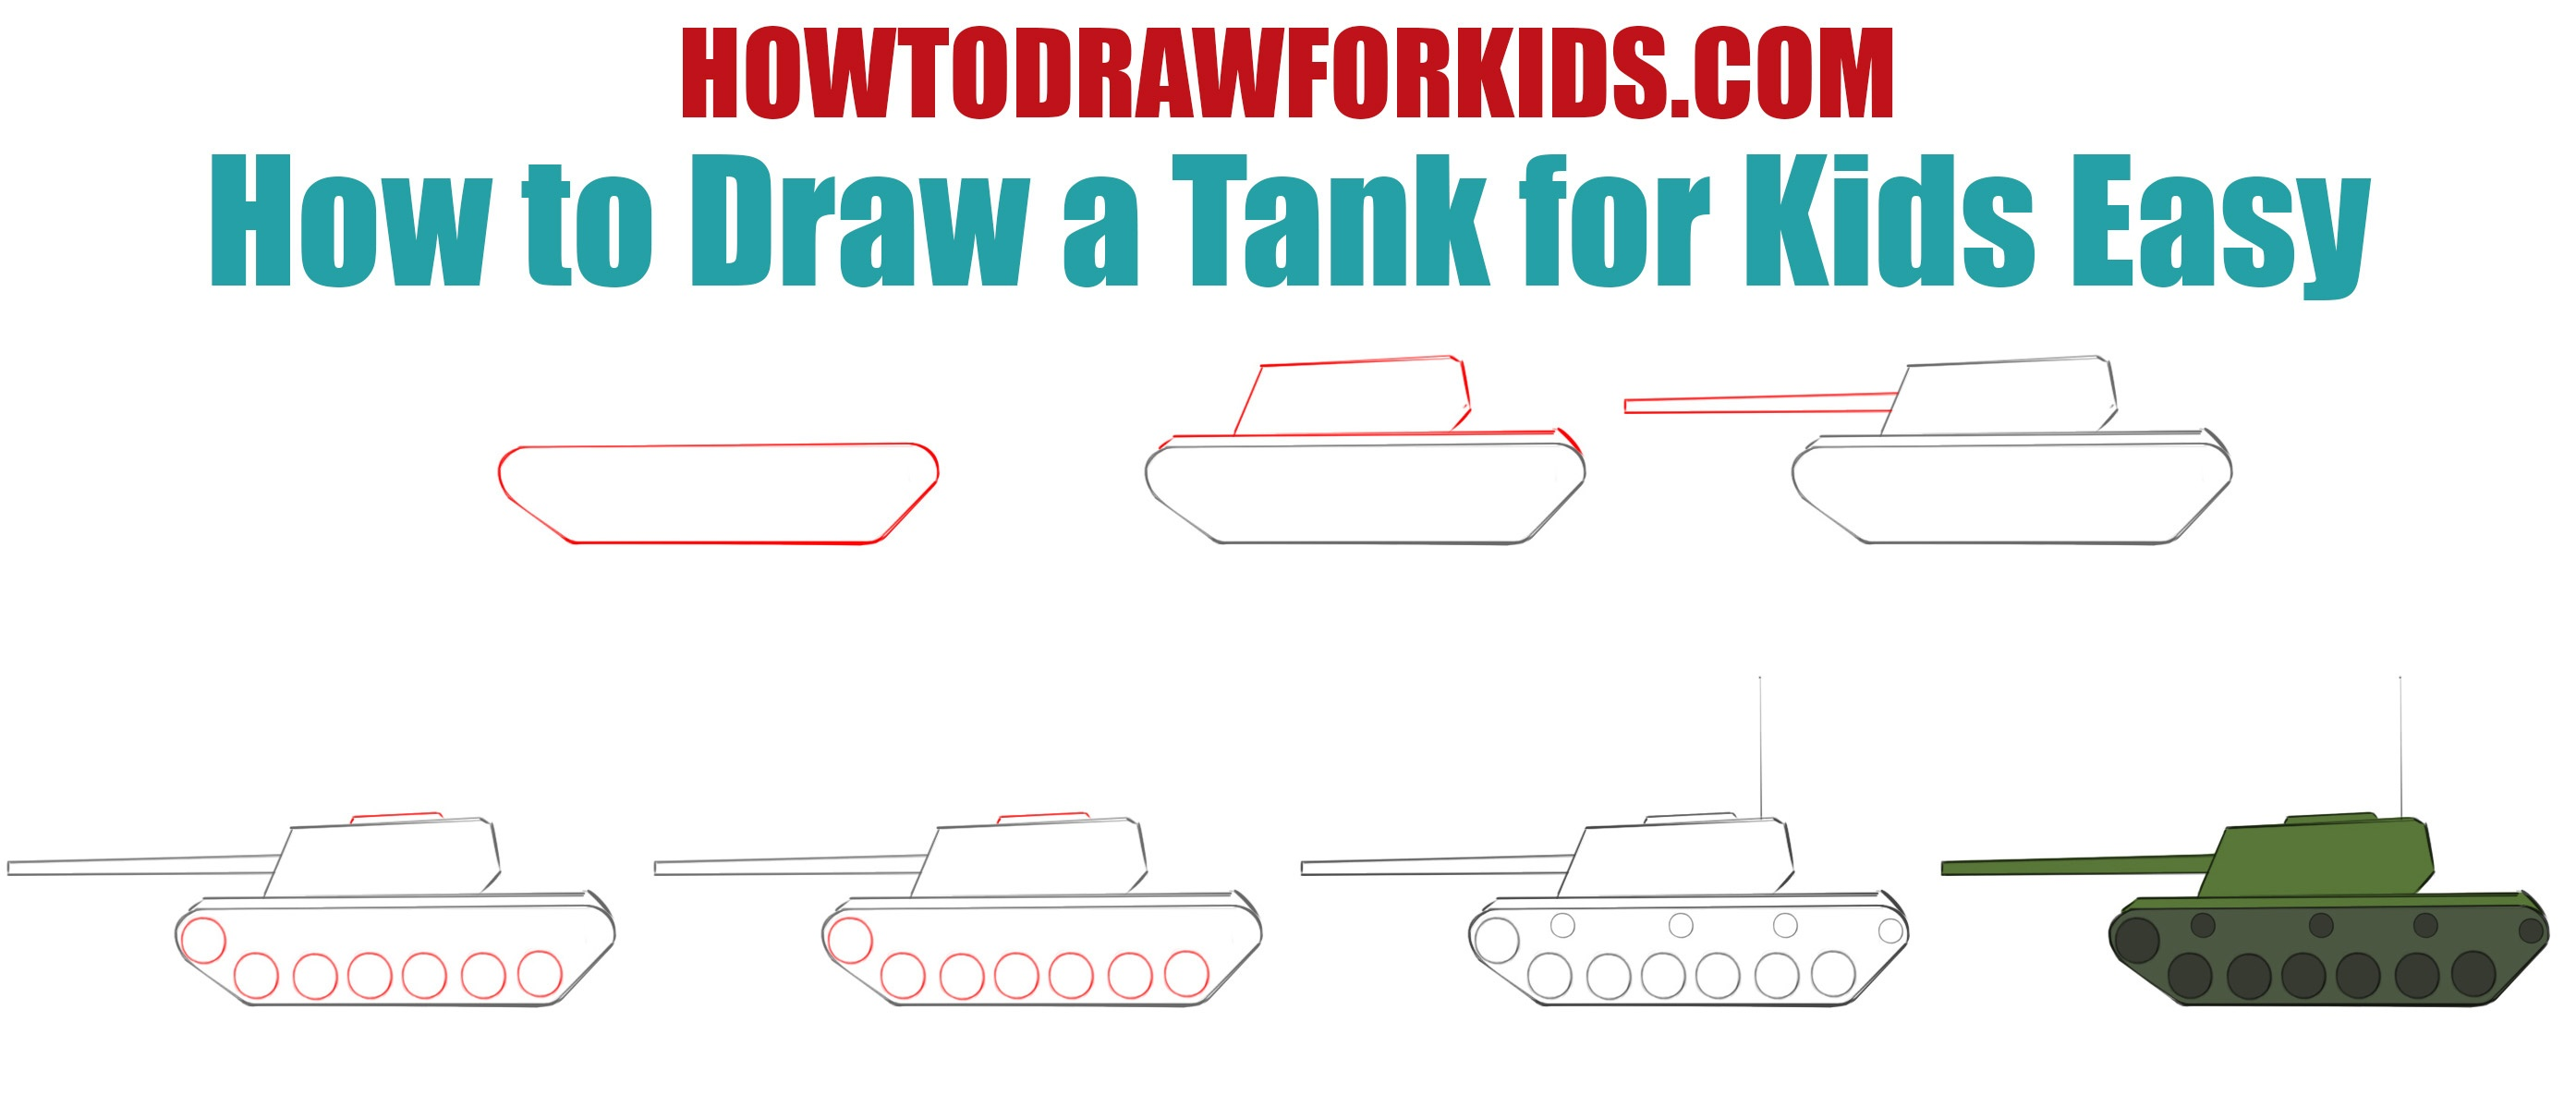 How to draw a tank easy for kids Step by Step